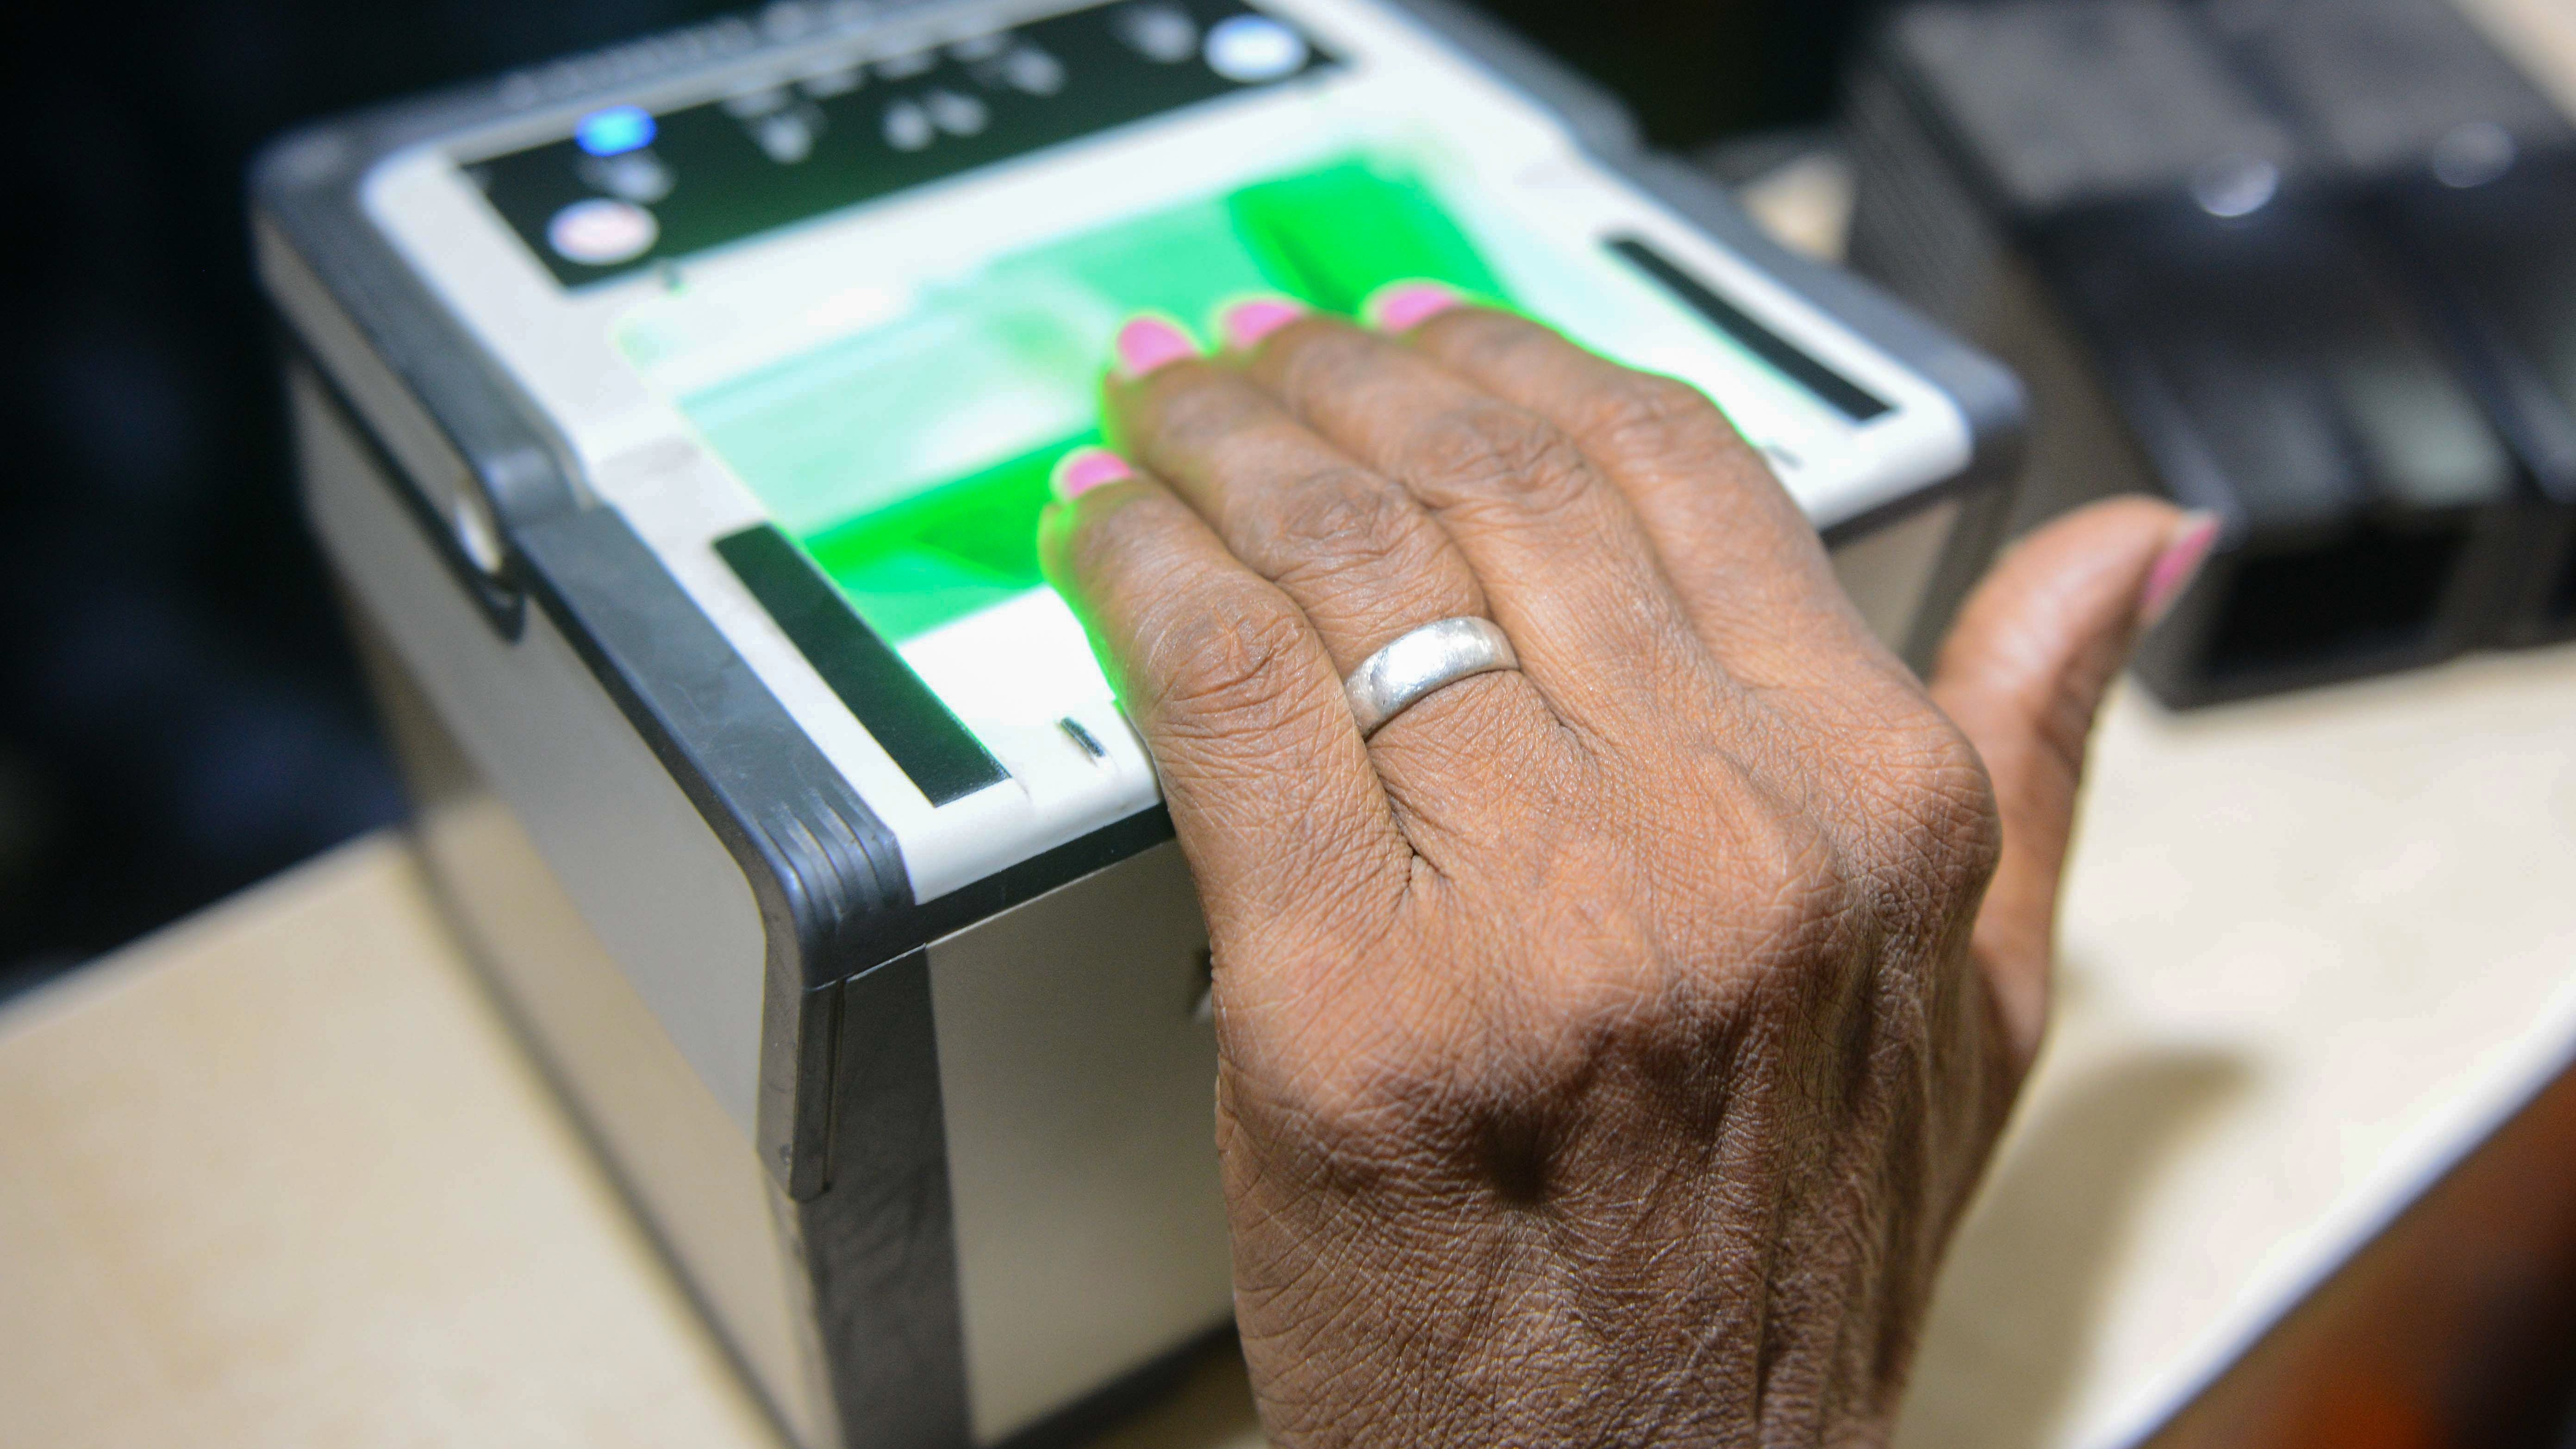 An Indian oil company left the biometric ID numbers of 6.7 million customers accessible on Google